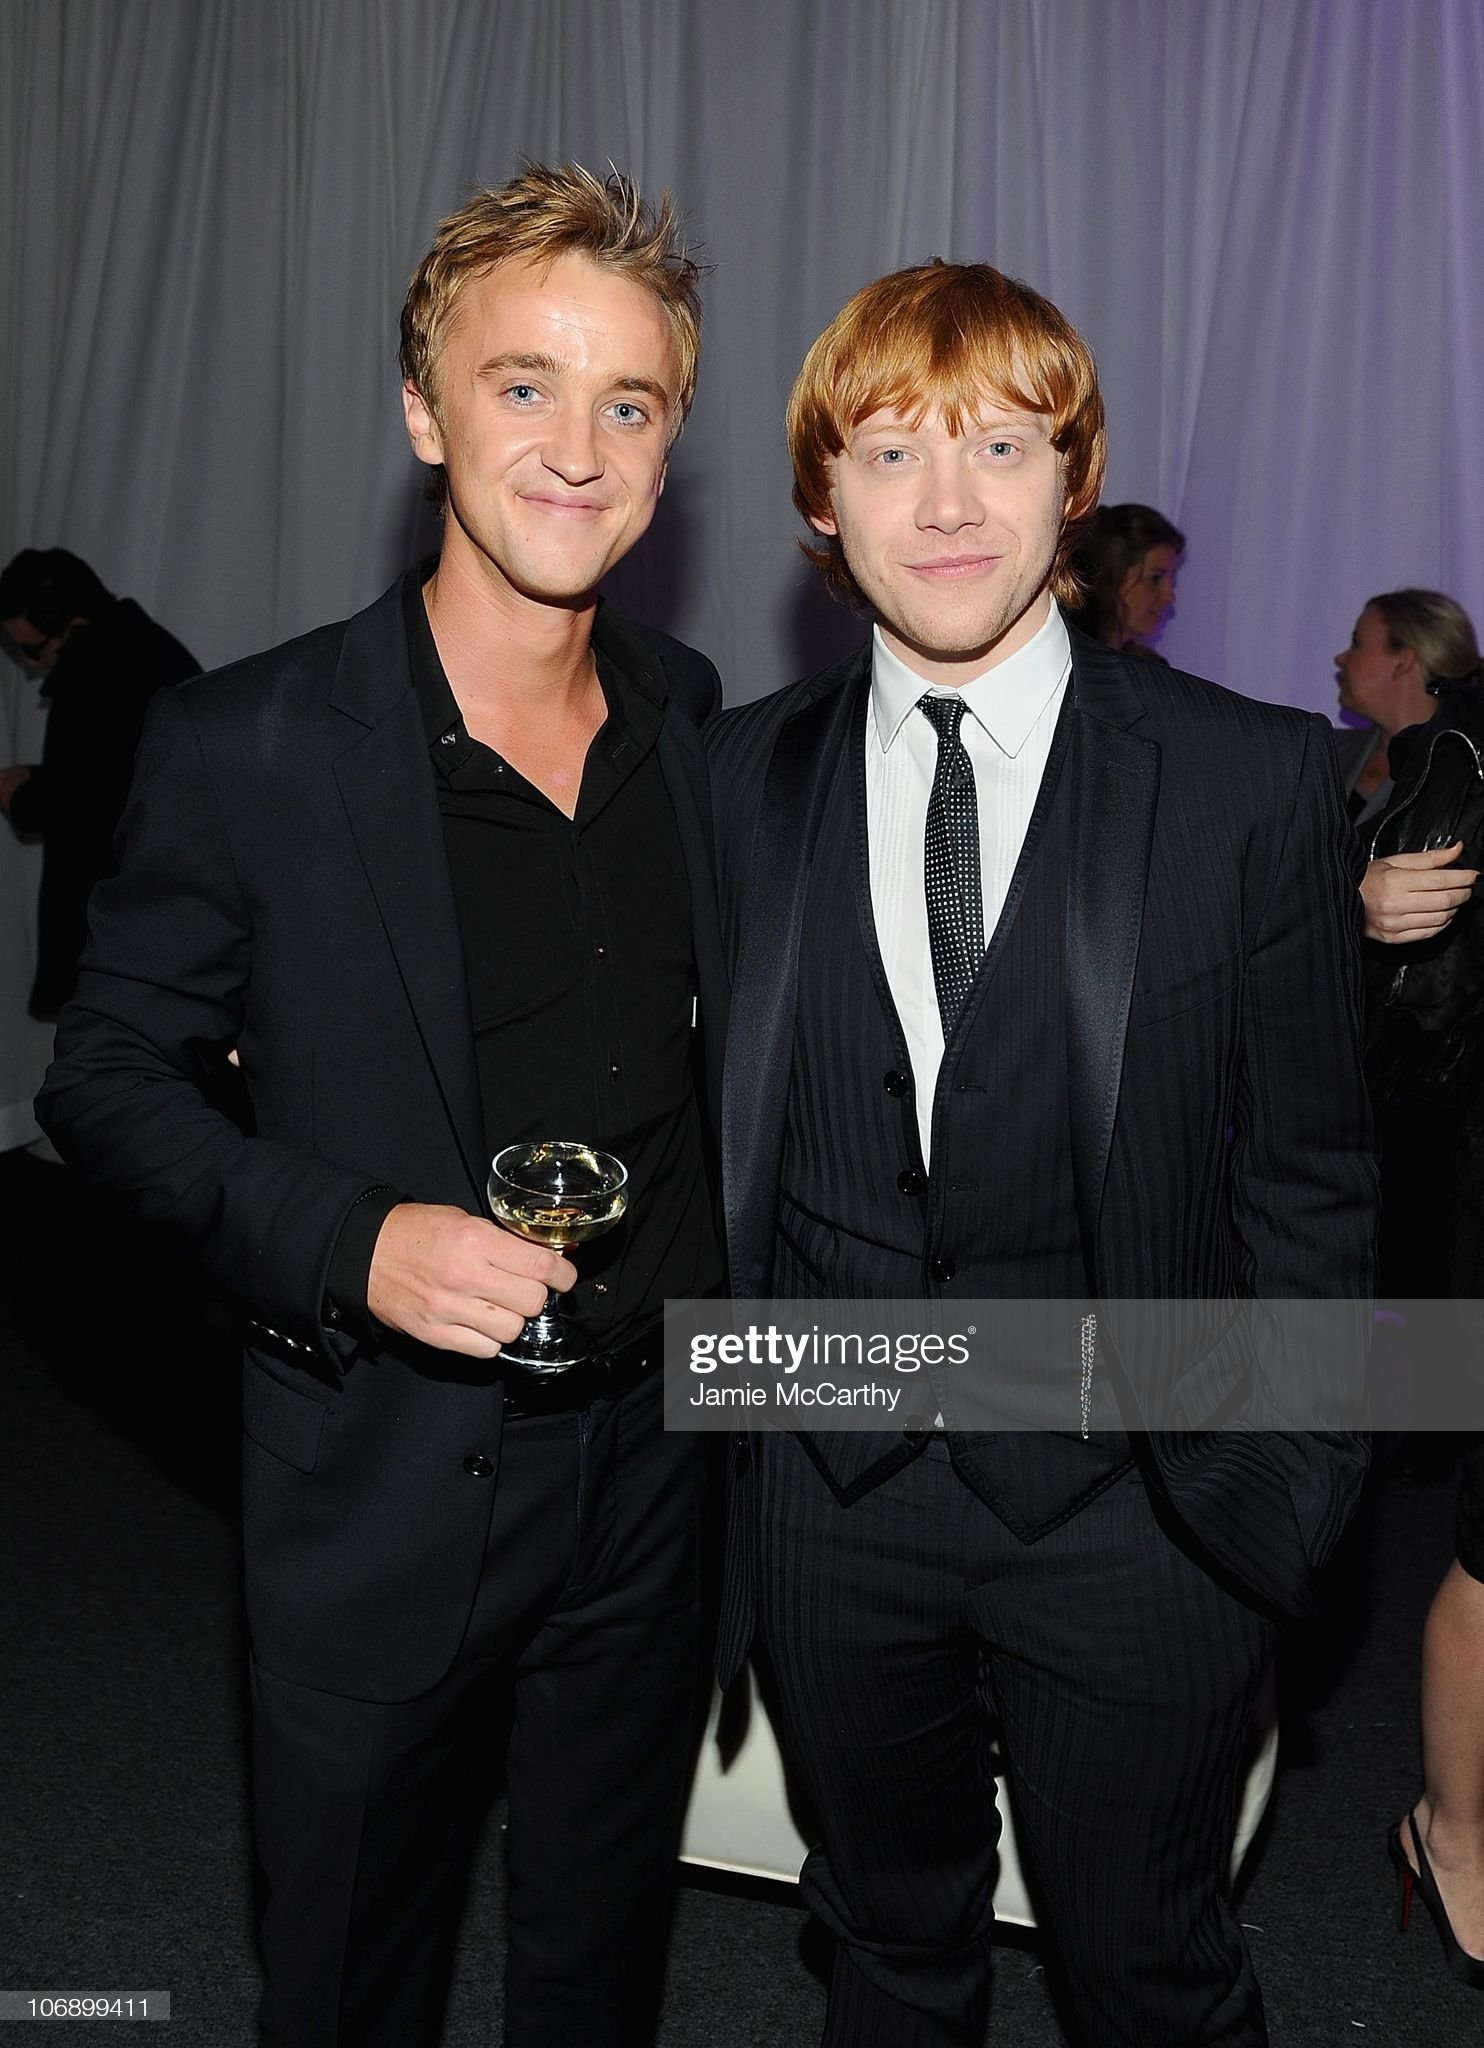 ¿Cuánto mide Rupert Grint? - Altura - Real height Actors-rupert-grint-and-tom-felton-attend-the-premiere-of-harry-and-picture-id106899411?s=2048x2048